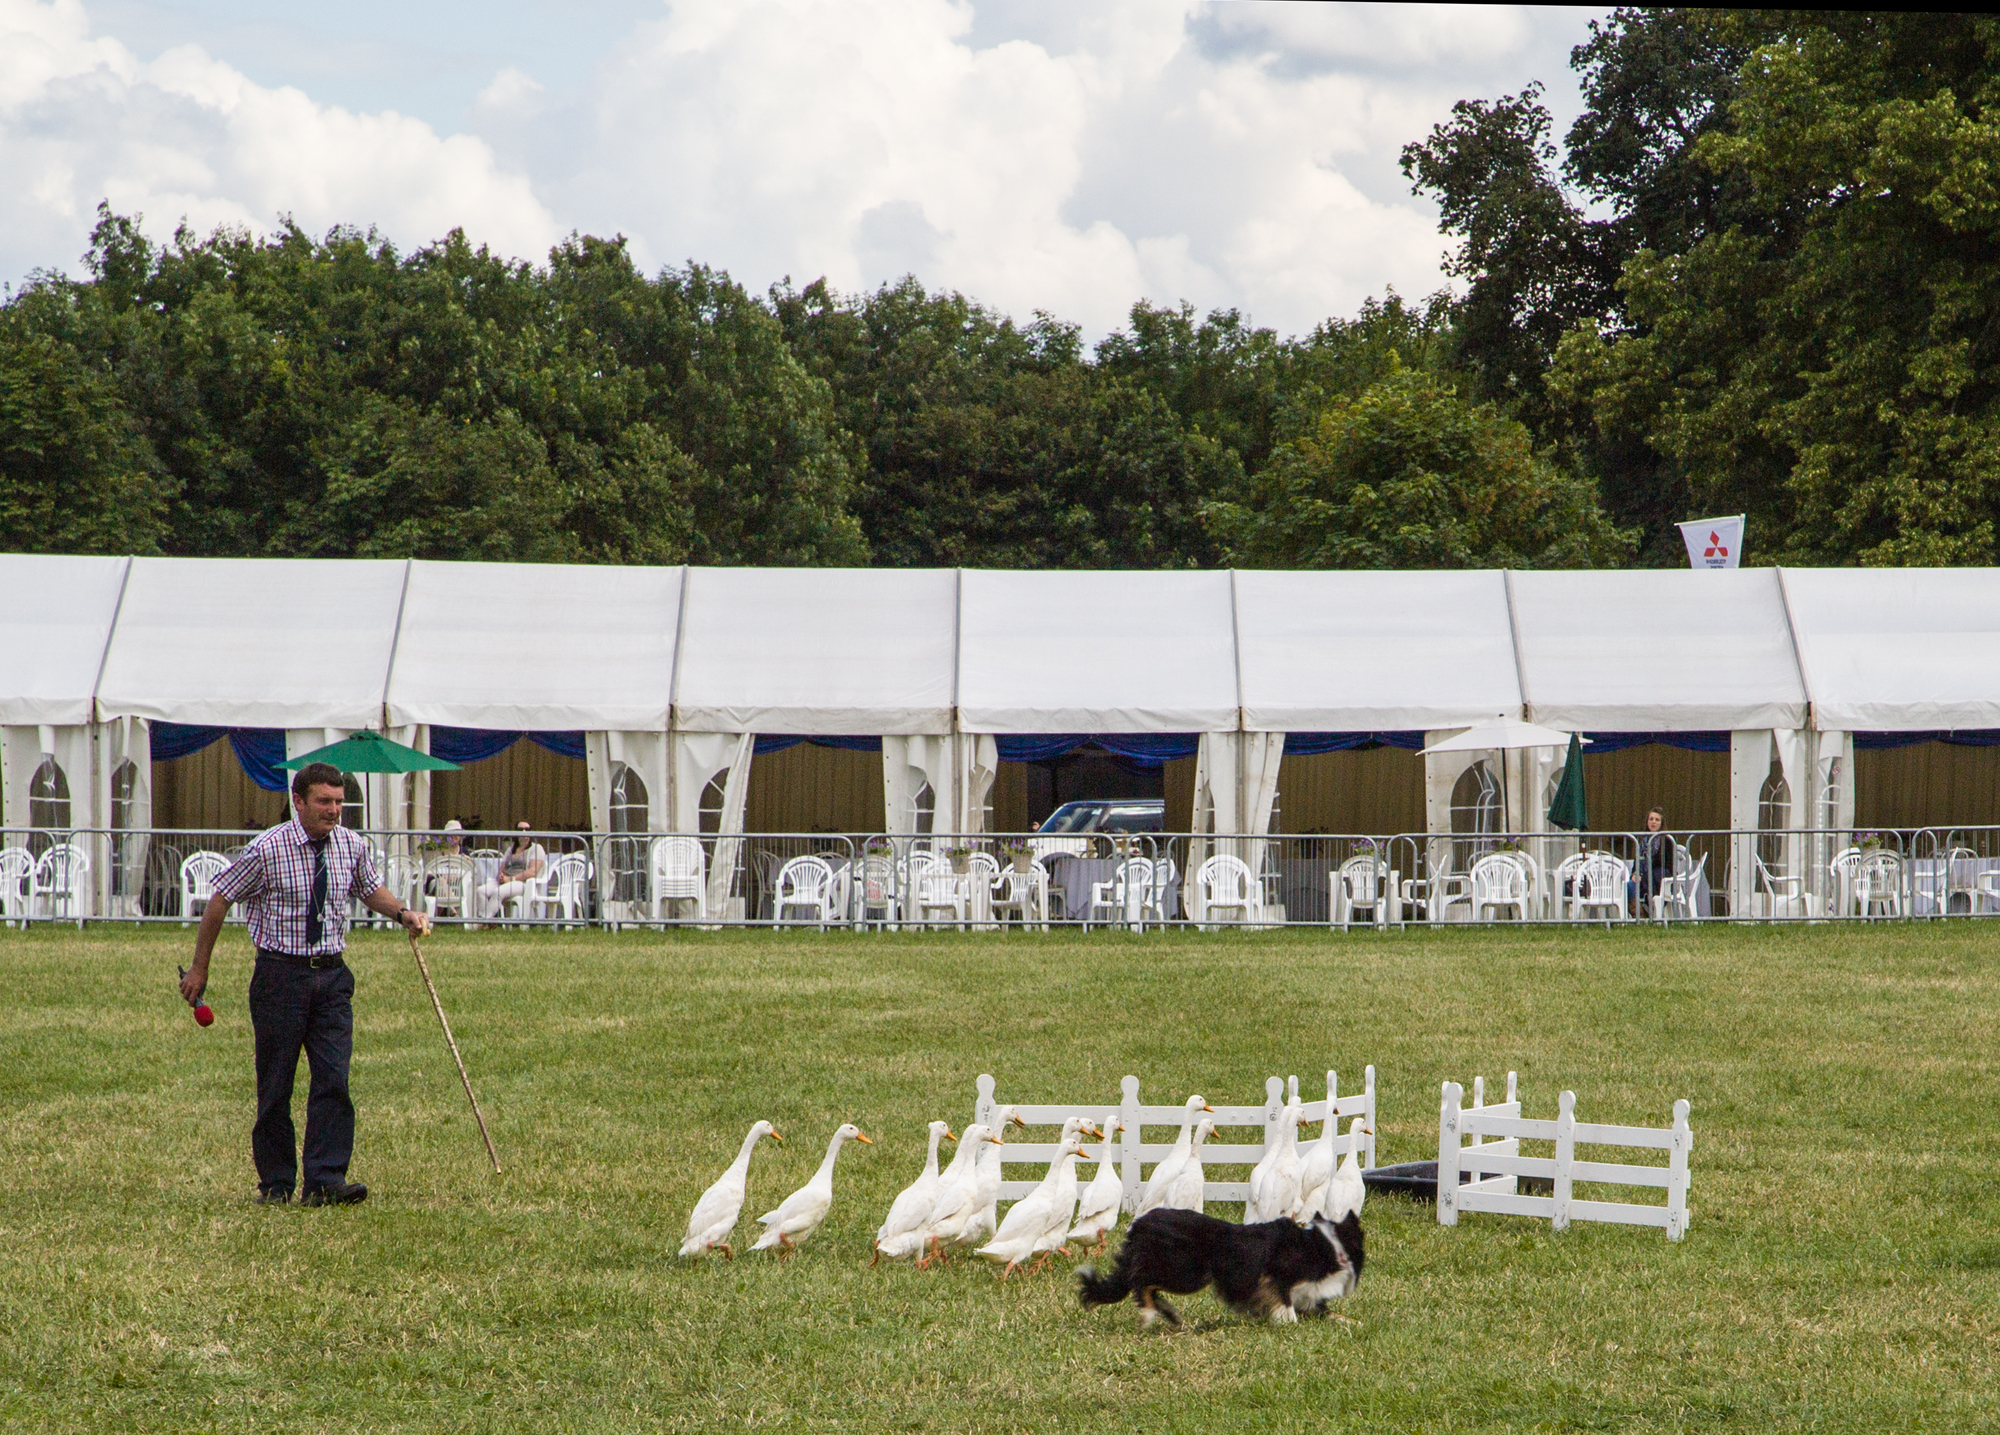 The Cotswold Show & Food Festival takes place at Cirencester Park over the weekend of July 2-3.